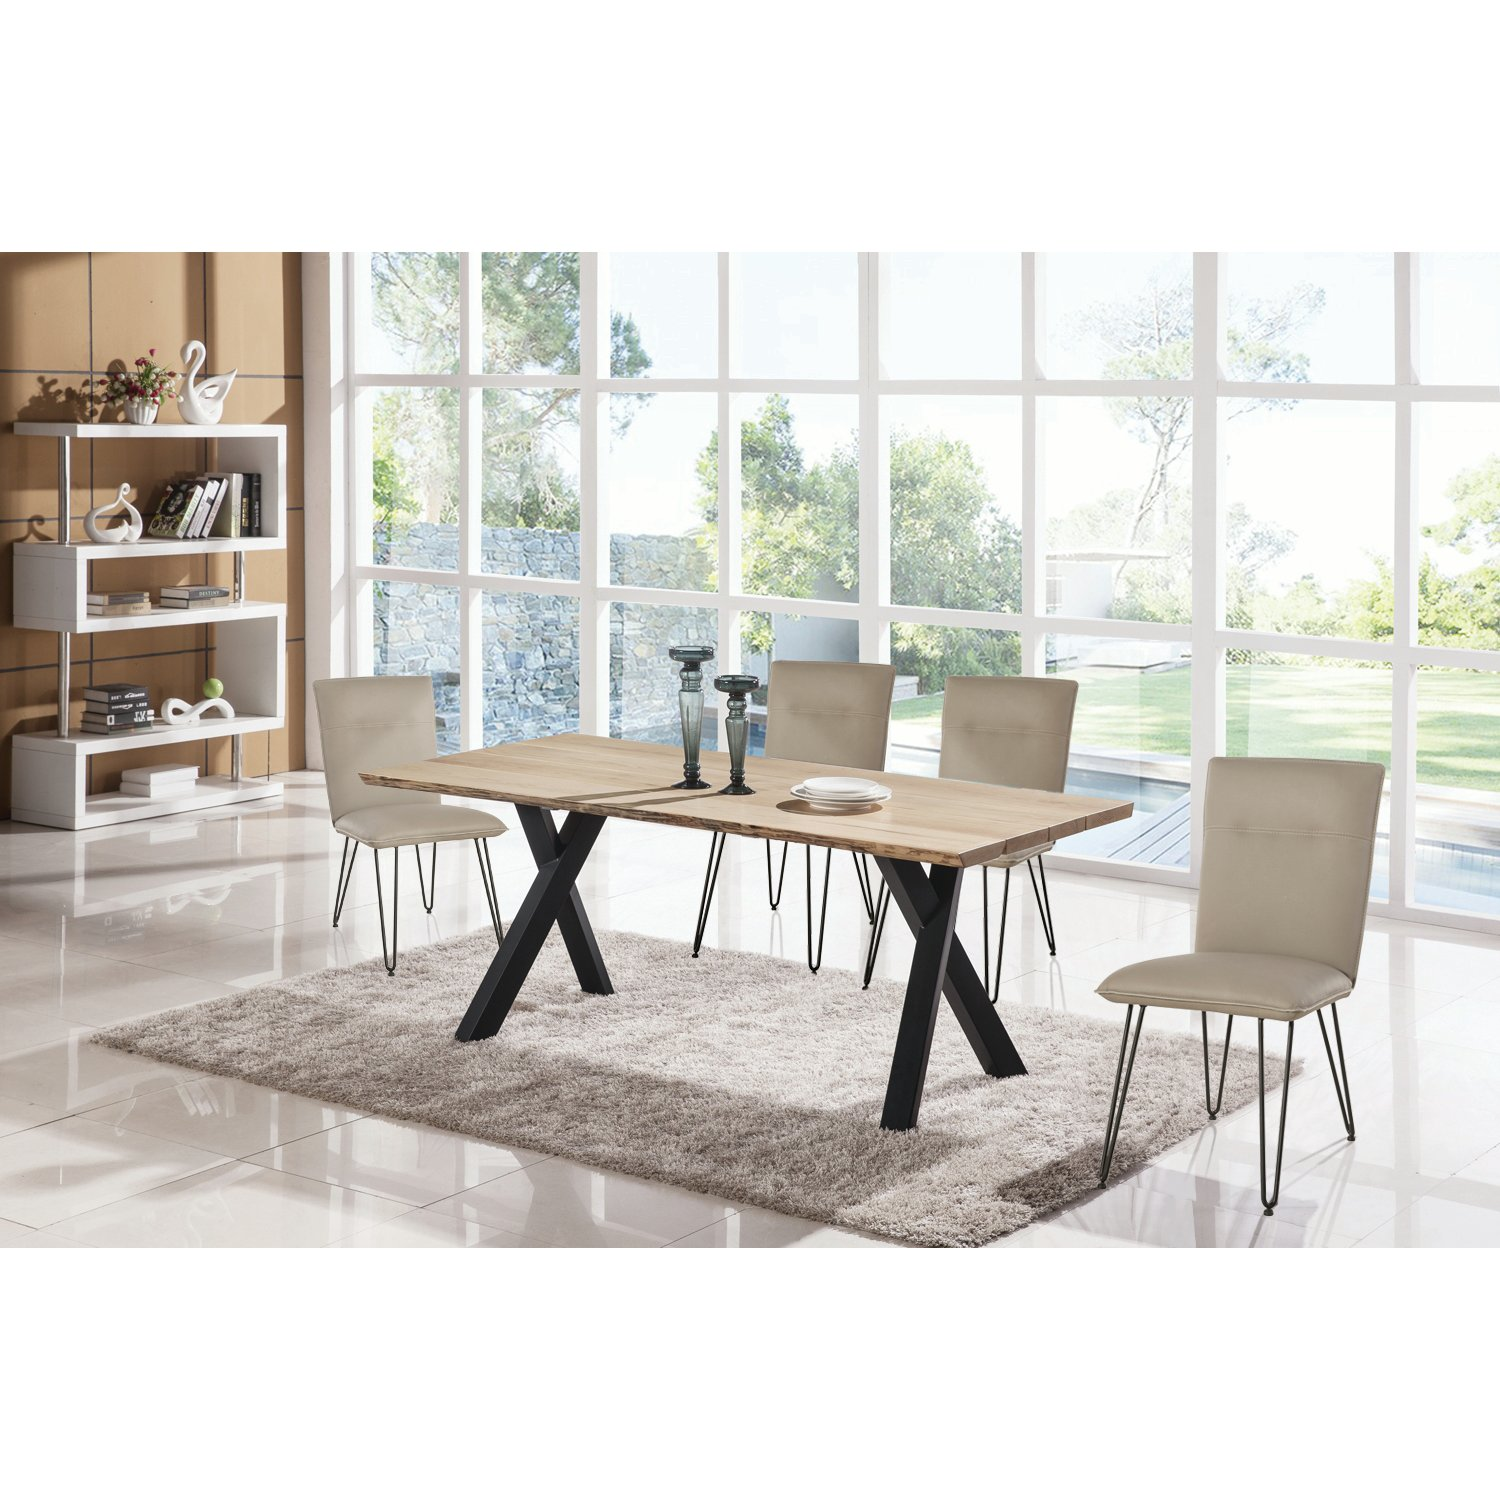 5 piece dining set modern live edge taupe and metal rc willey